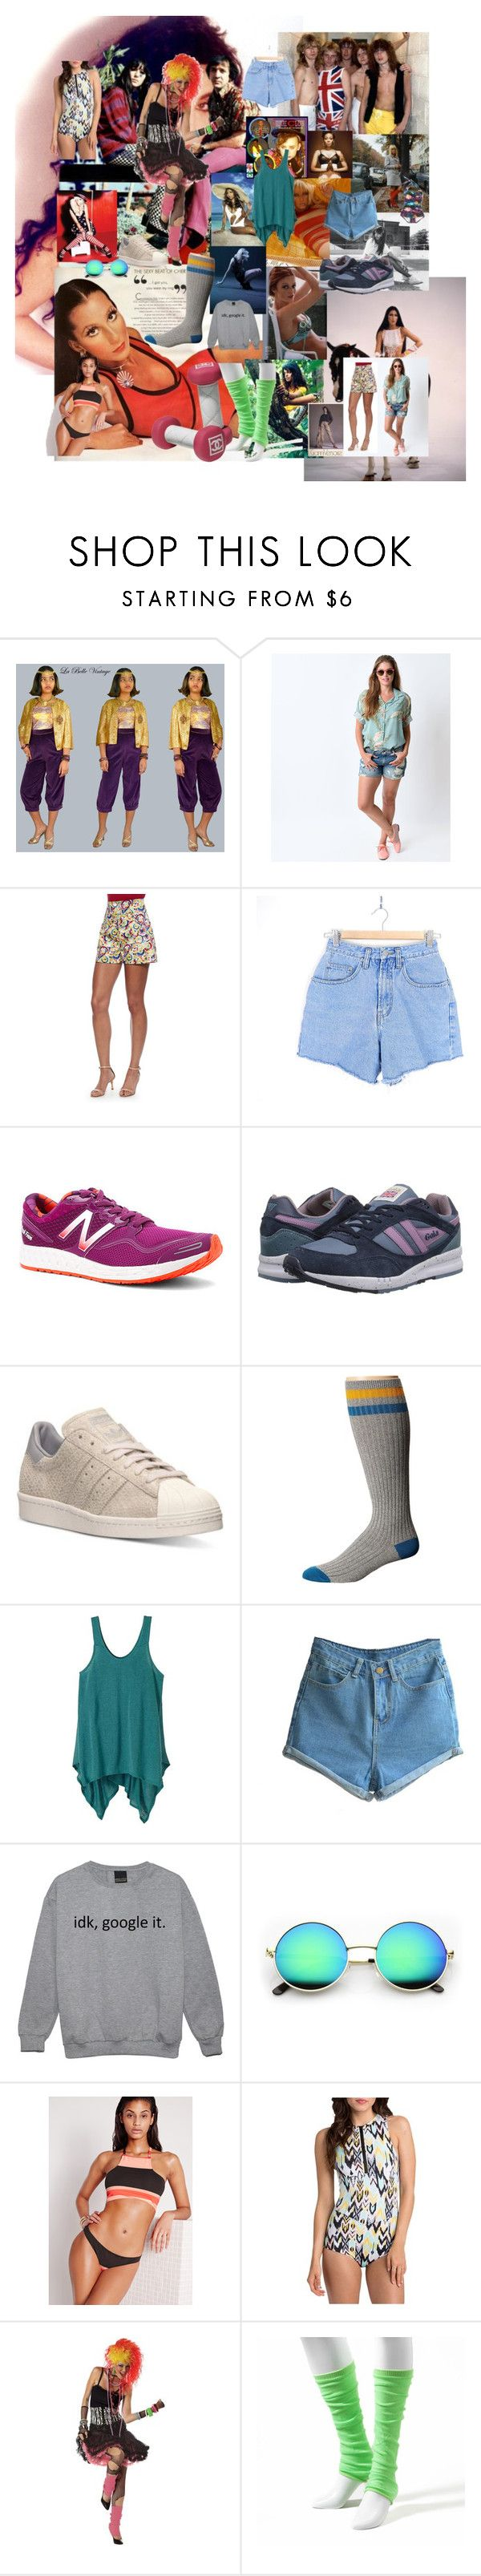 """Untitled #34"" by xaxa-szasza on Polyvore featuring Versace, Carolina Herrera, New Balance, Gola, adidas, Volcom, prAna, Missguided, Billabong and Esther Williams"